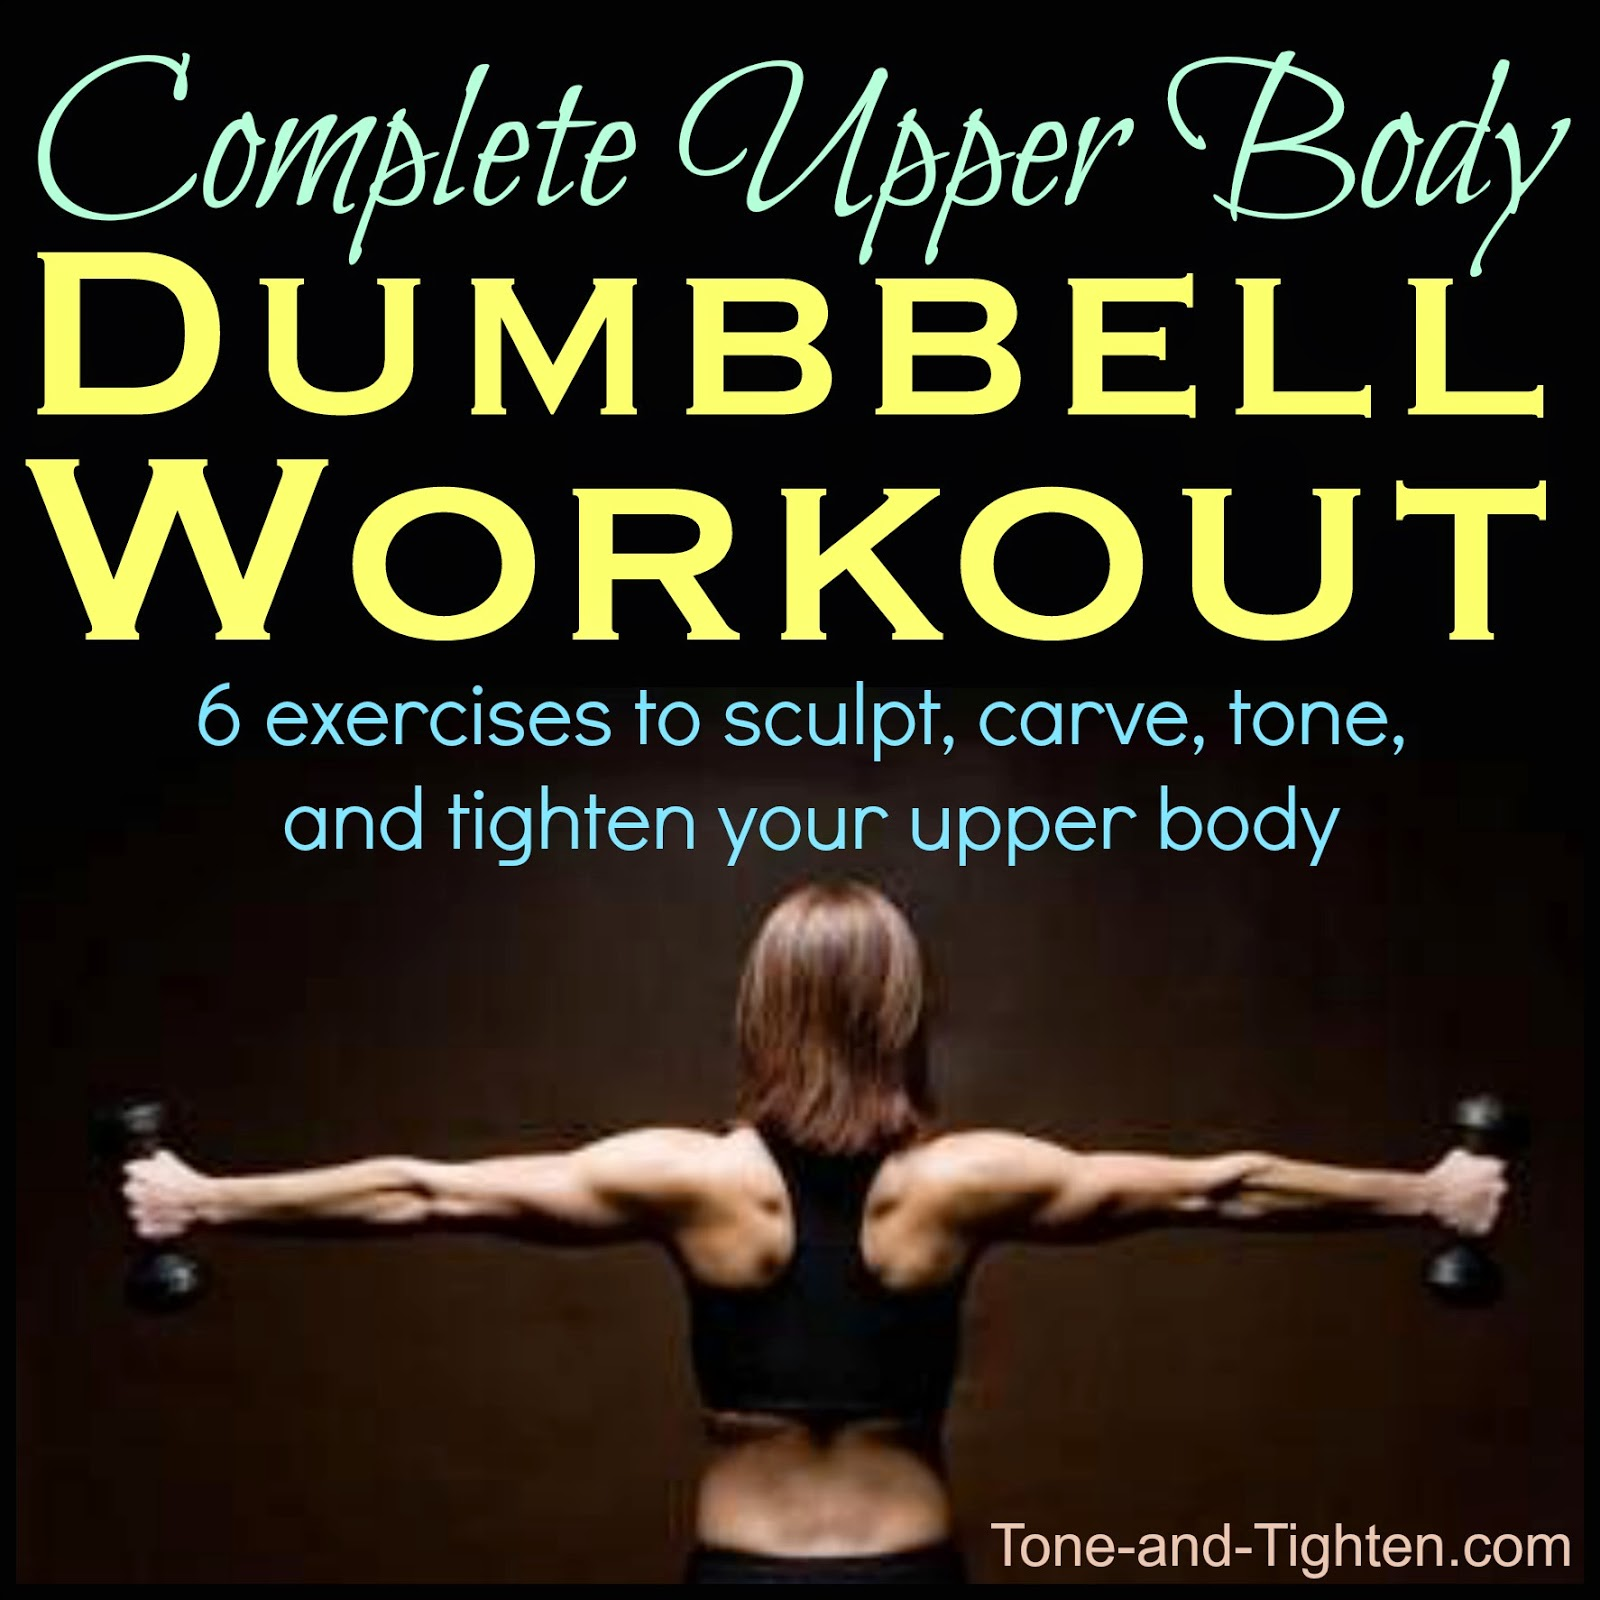 Complete upper-body workout with dumbbells to tone and tighten your arms